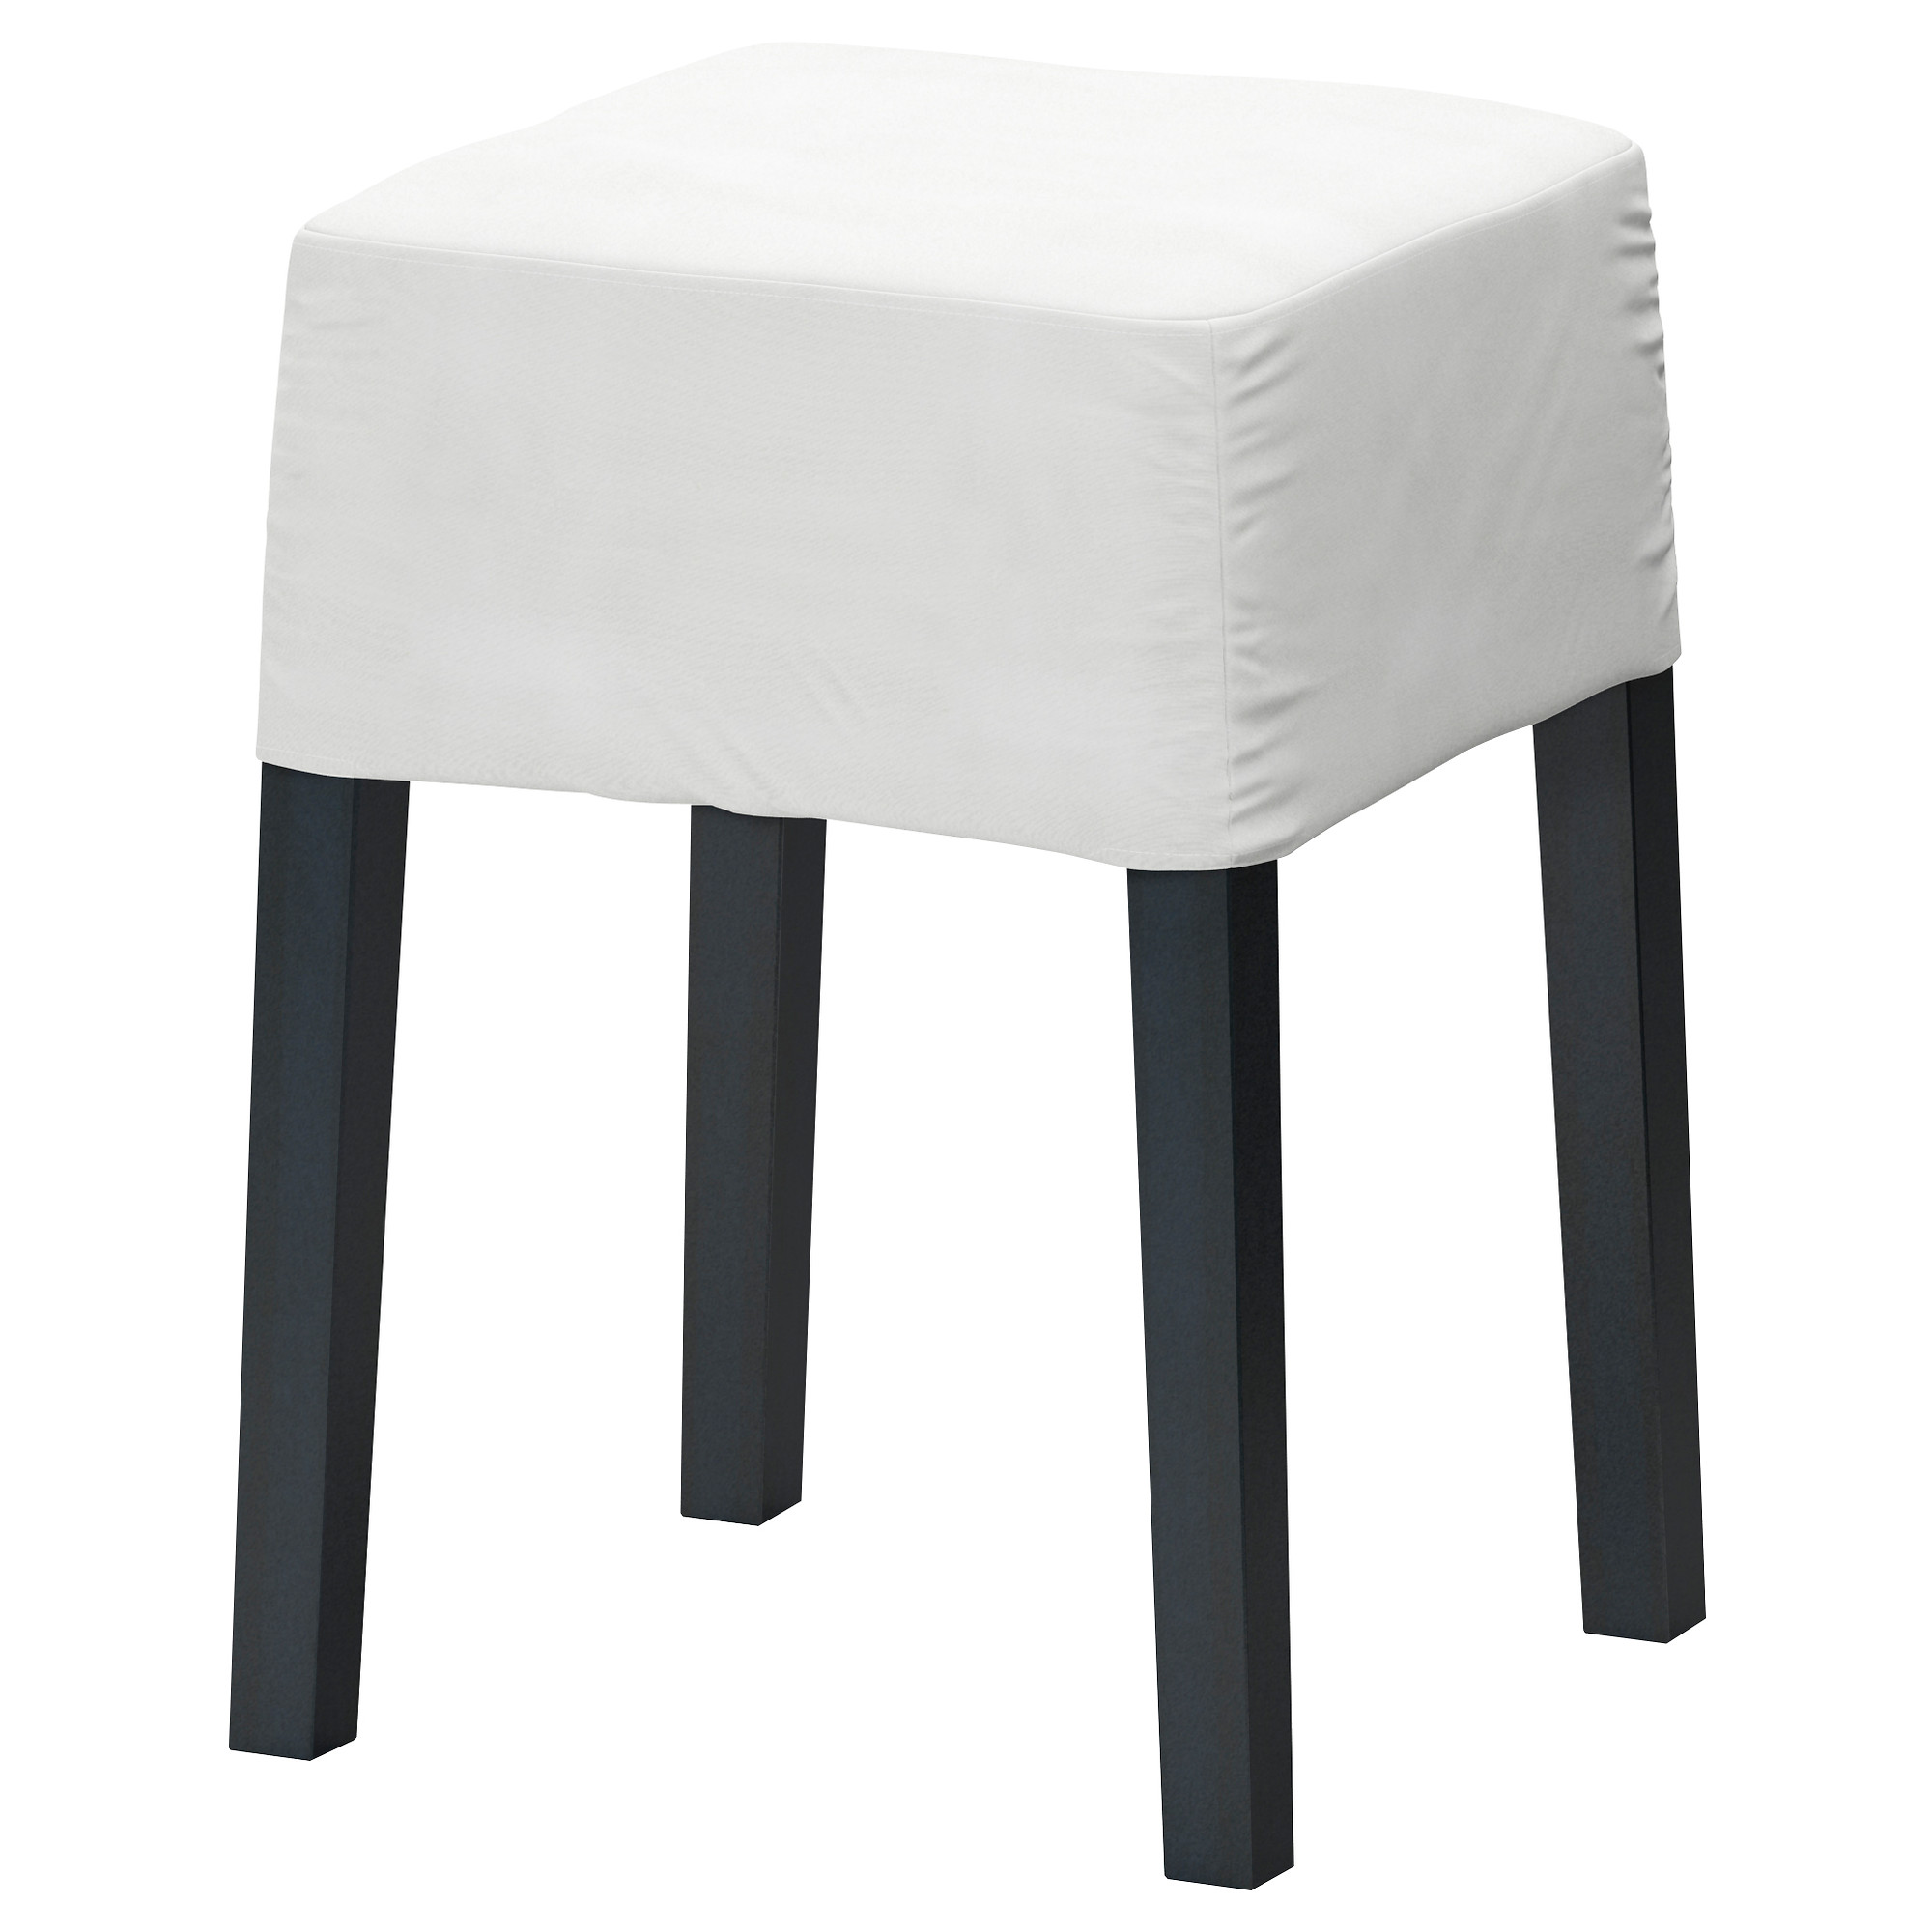 Very Impressive portraiture of  seagrass bar stools ethnic furniture interesting kitchen stools design with #2F3235 color and 2000x2000 pixels